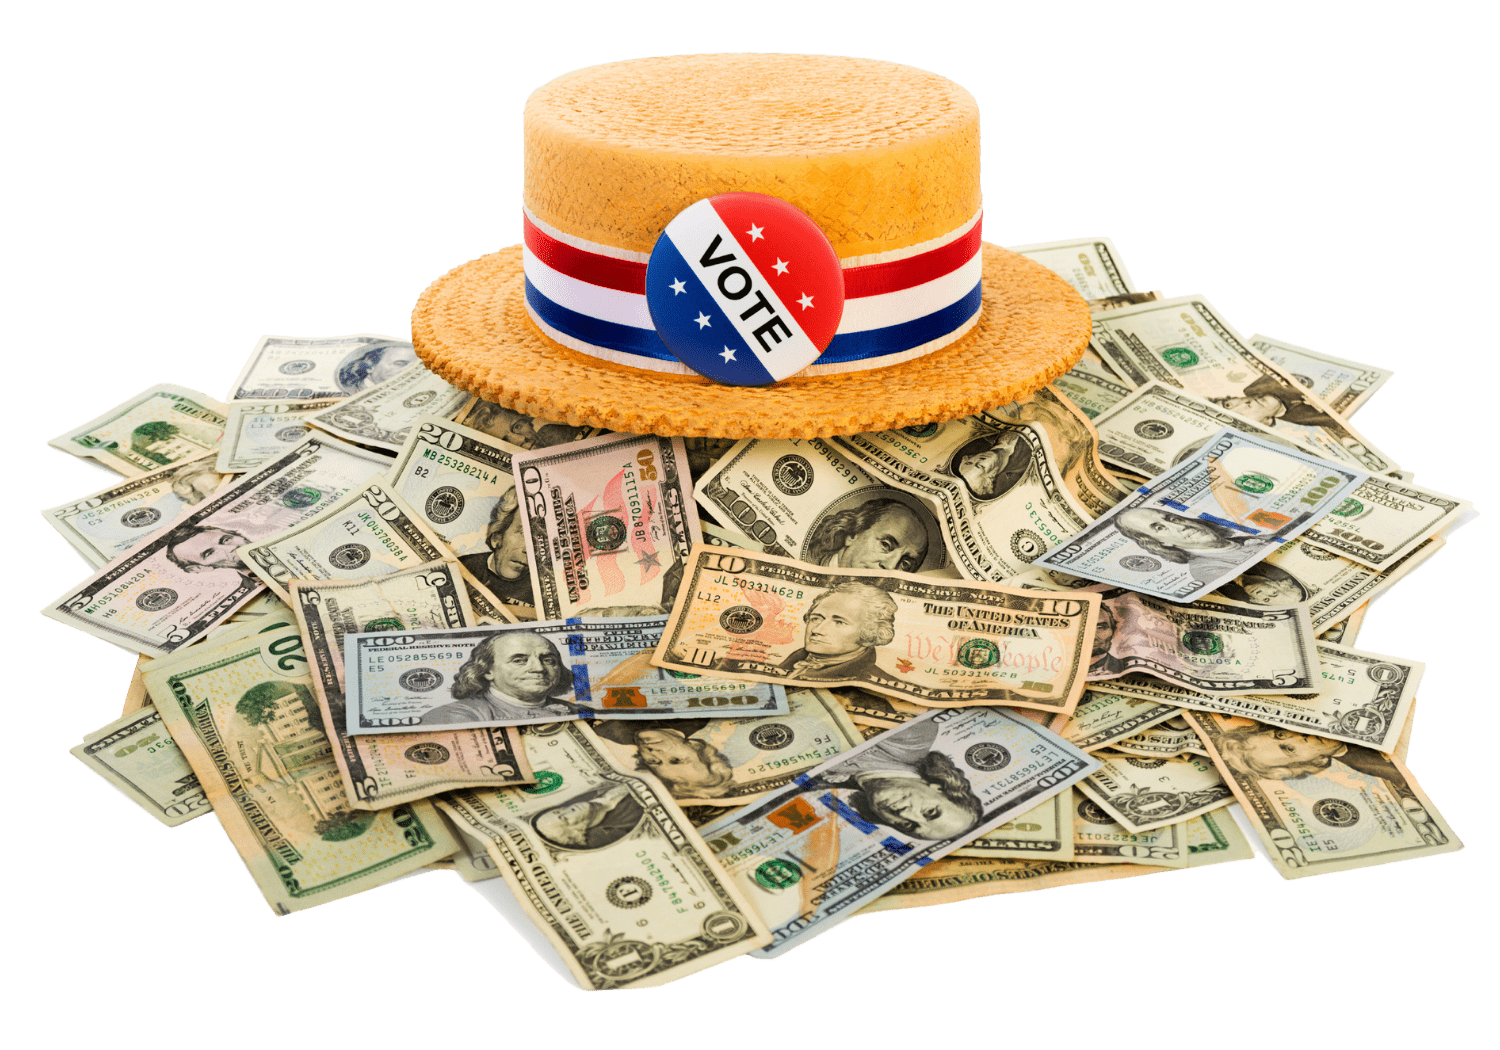 How Democrats Outraised Republicans in the Most Expensive Election Ever